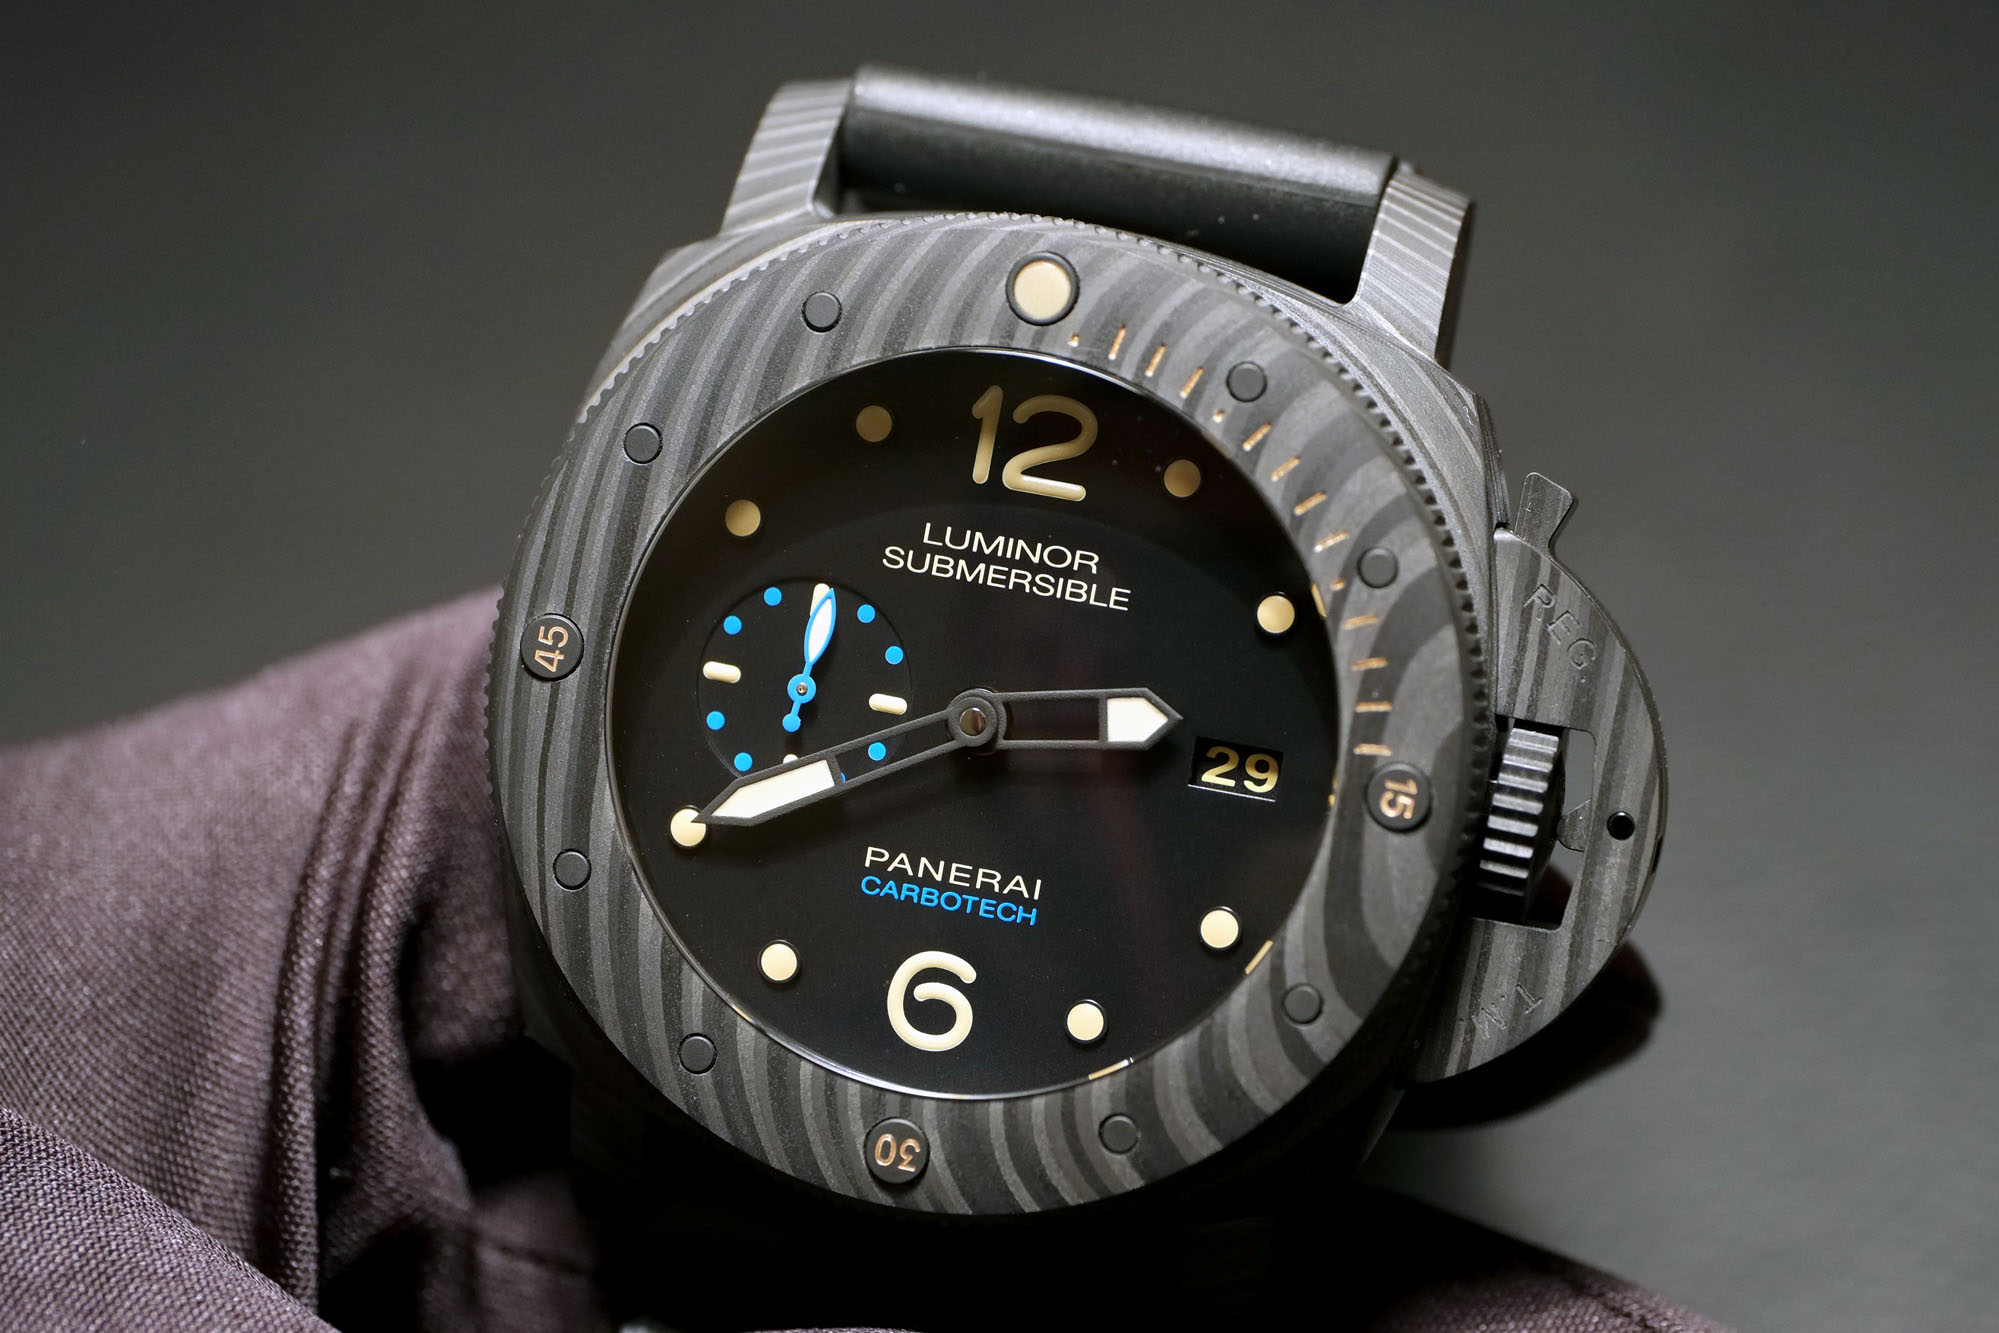 luminor panerai officine marina watches mens p